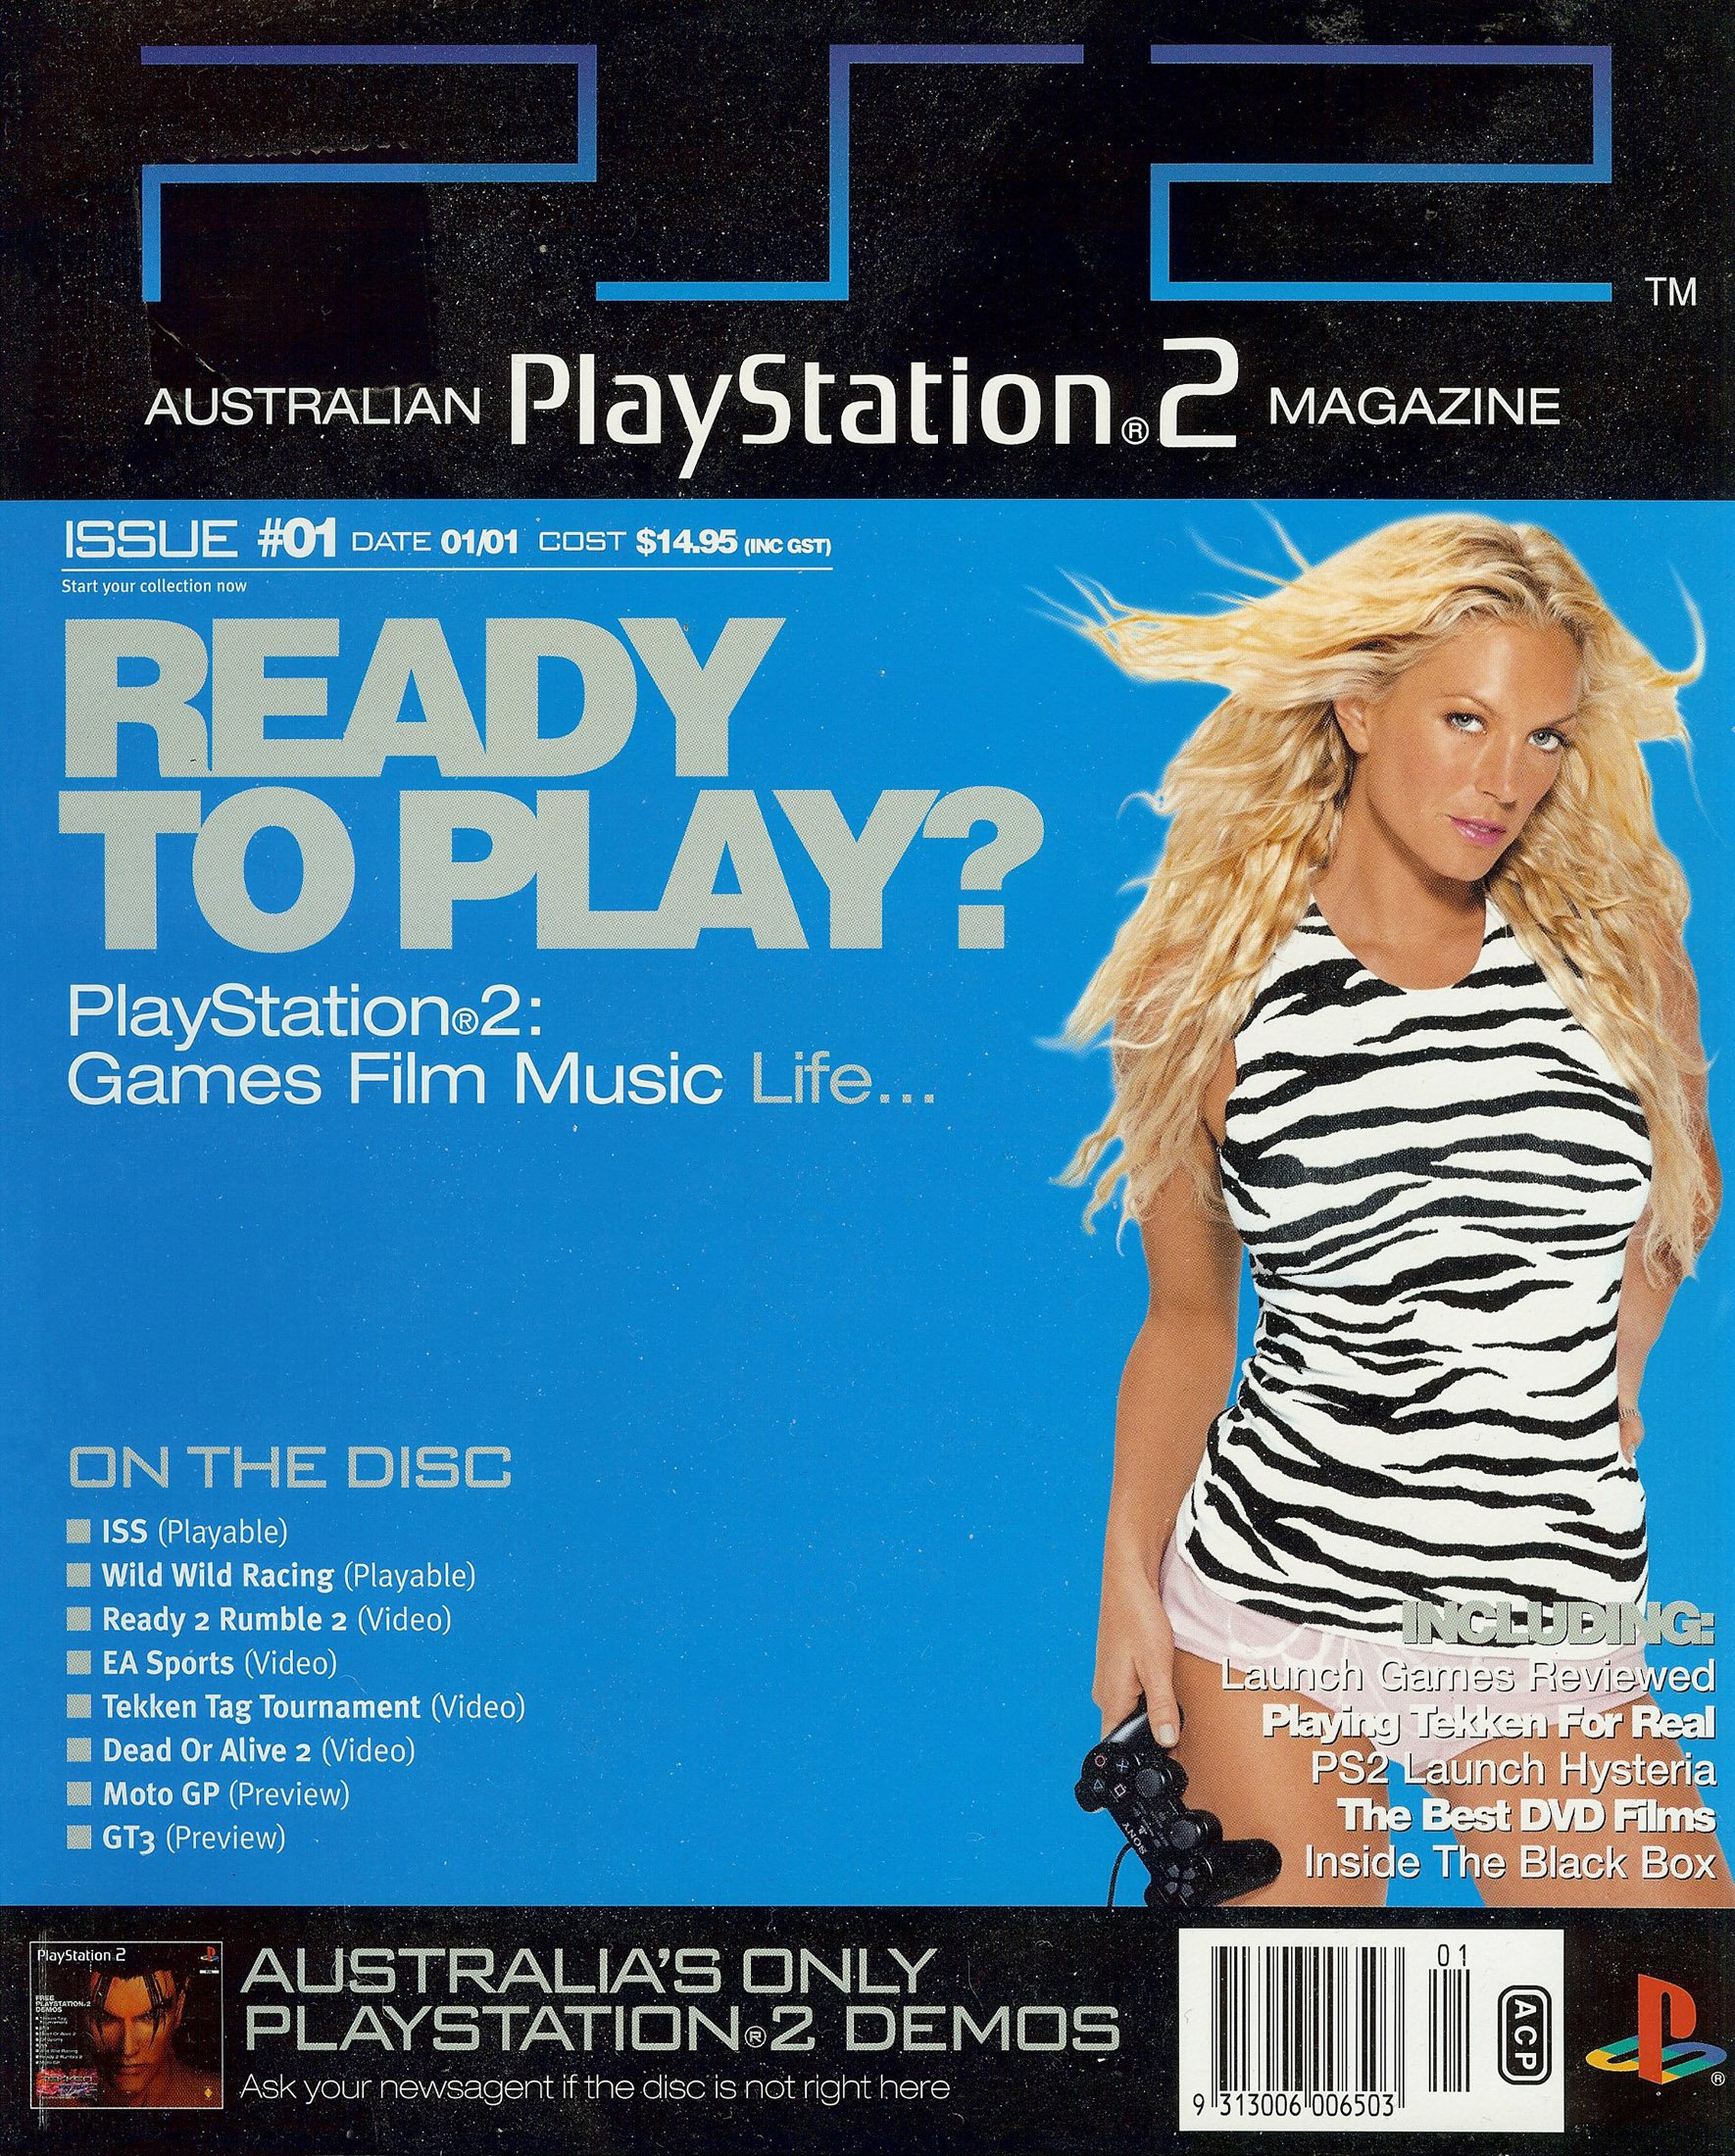 Playstation 2 Official Magazine (AUS) Issue 01 (January 2001)